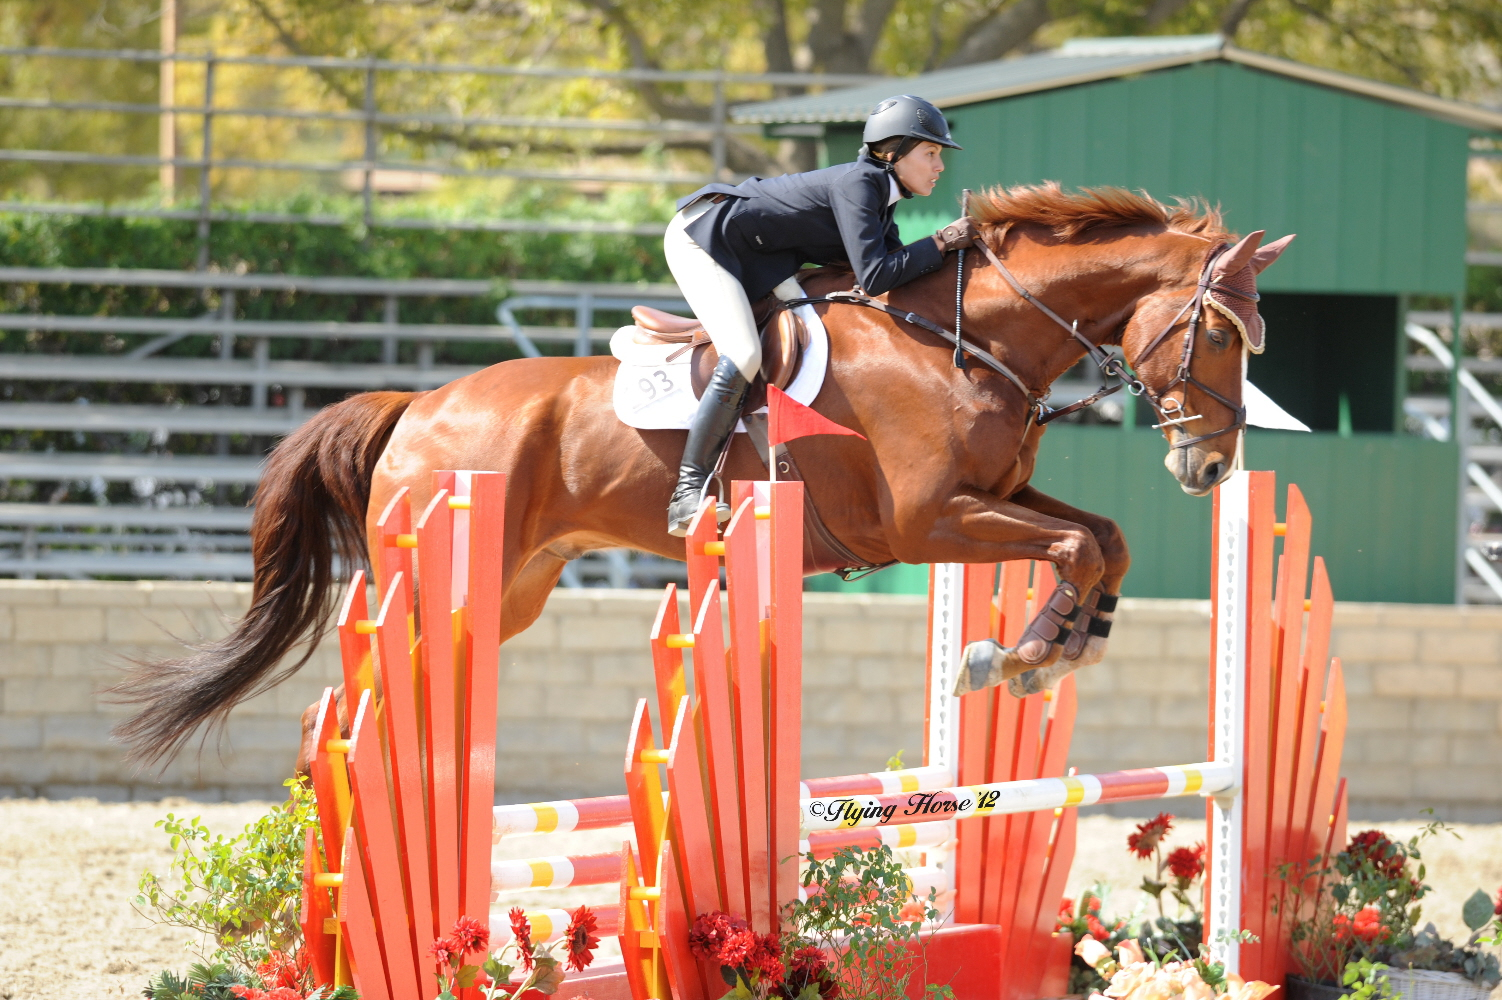 Chestnut Horse Jumping Grand Prix - photo#39